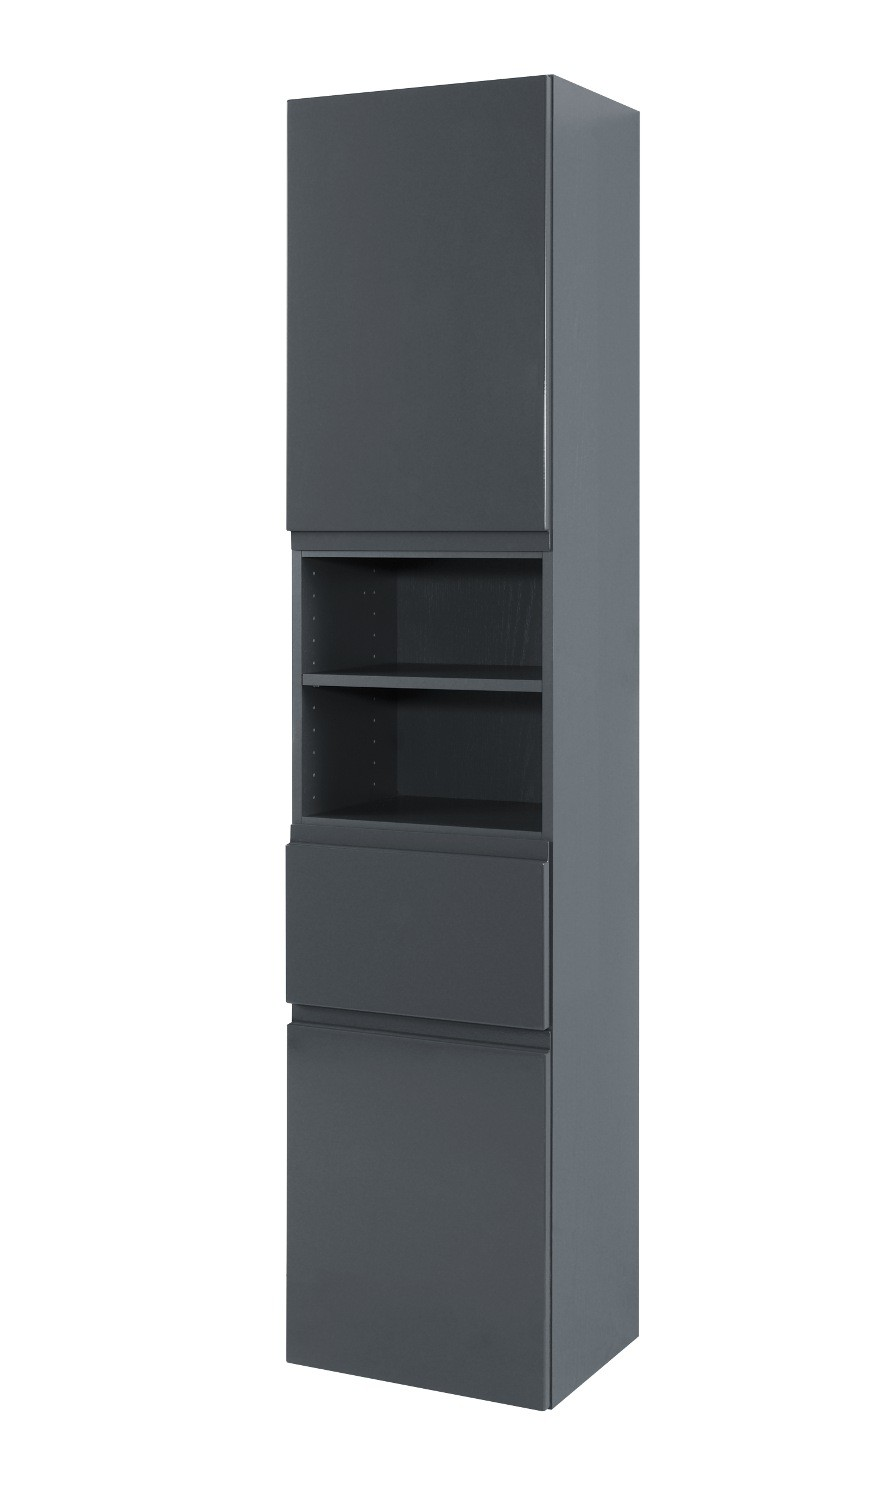 neu badezimmer hochschrank cardiff seitenschrank 40 cm grau. Black Bedroom Furniture Sets. Home Design Ideas